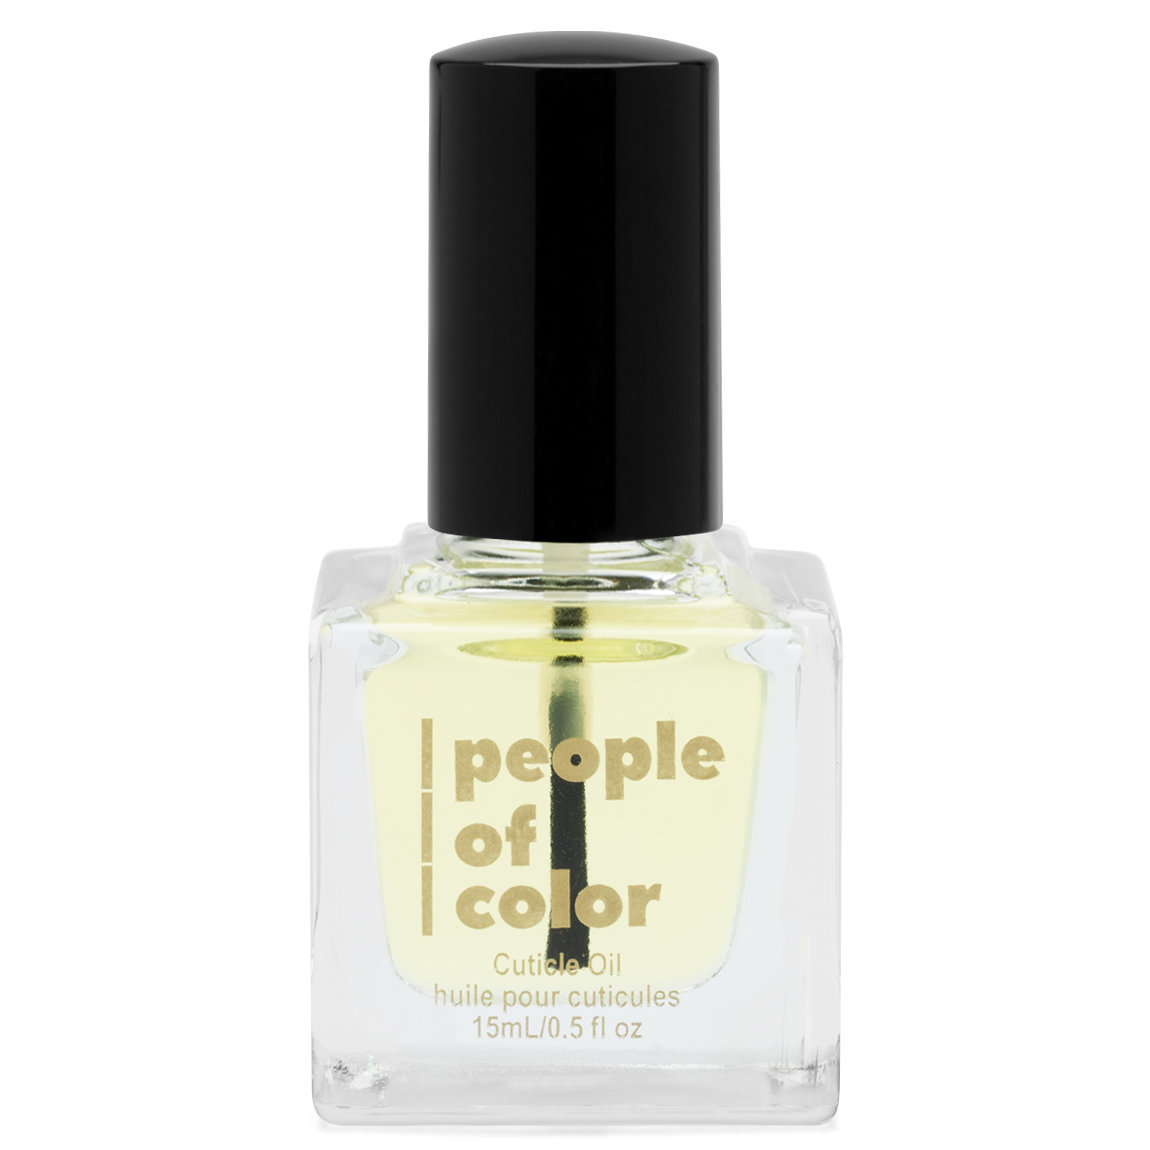 People of Color Beauty Citrus Breeze Cuticle Oil alternative view 1 - product swatch.